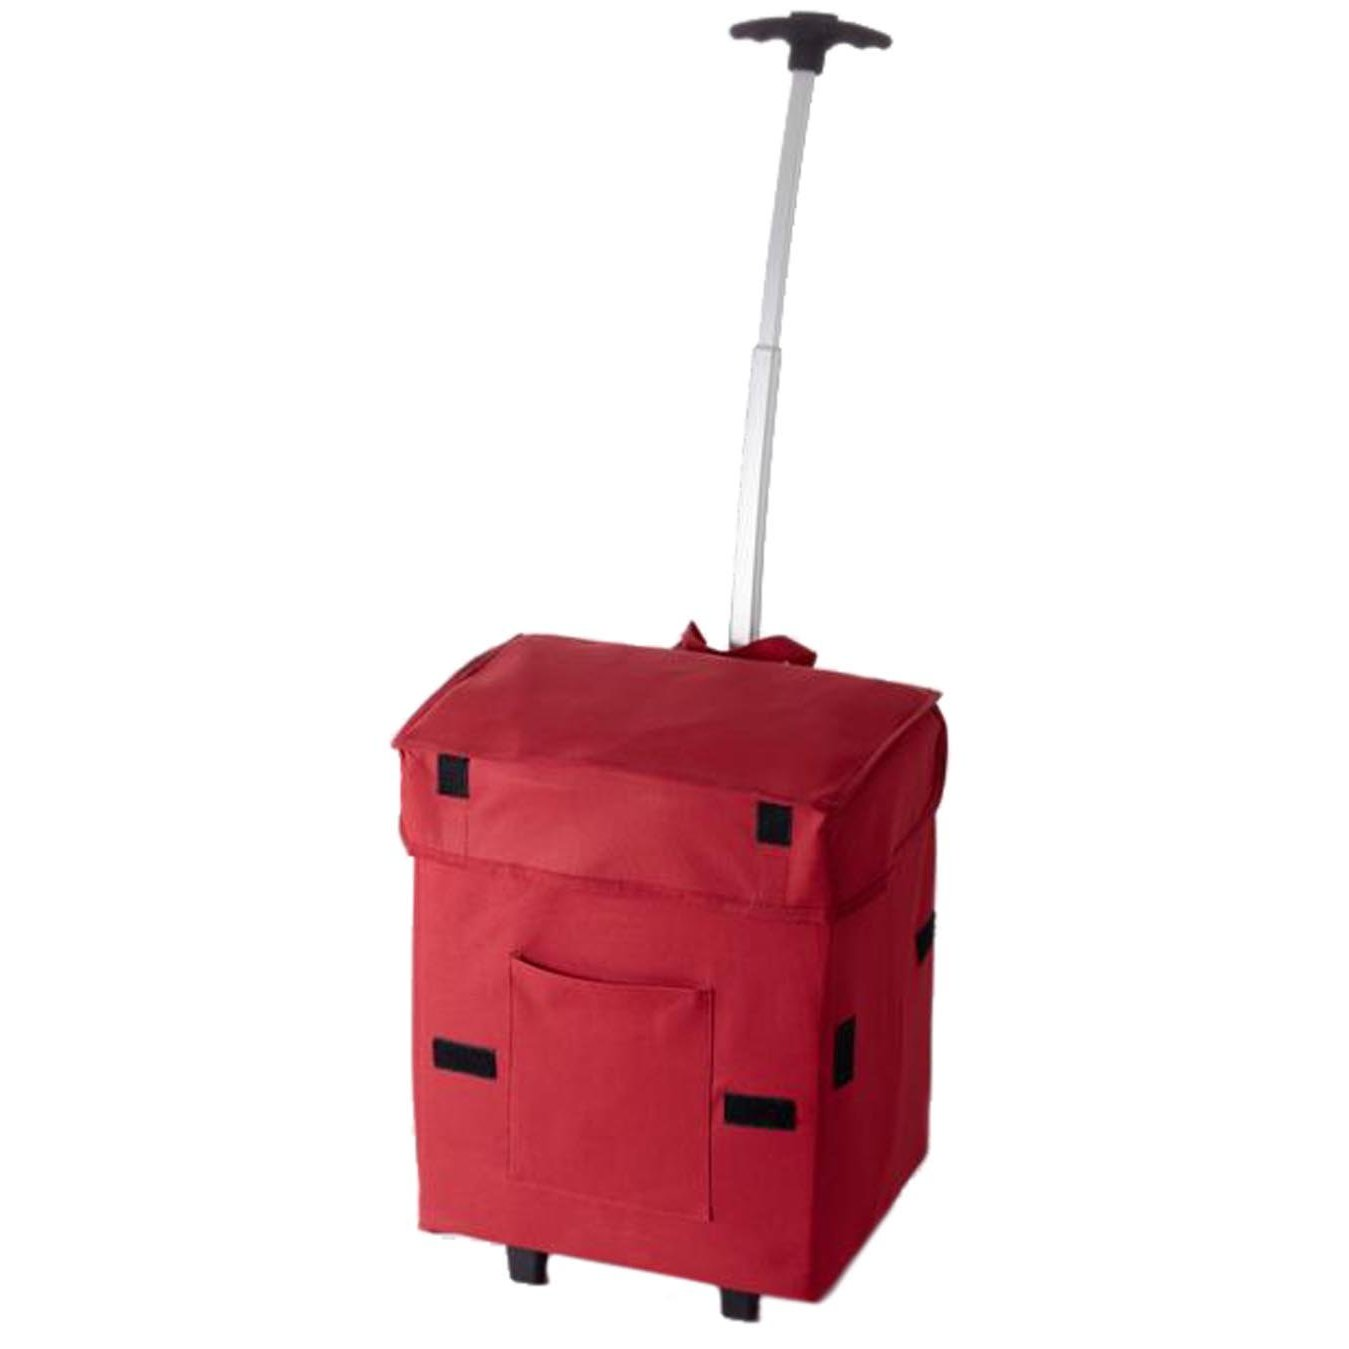 dbest 01-016 Smart Cart, RED [Tools & Home Improvement]